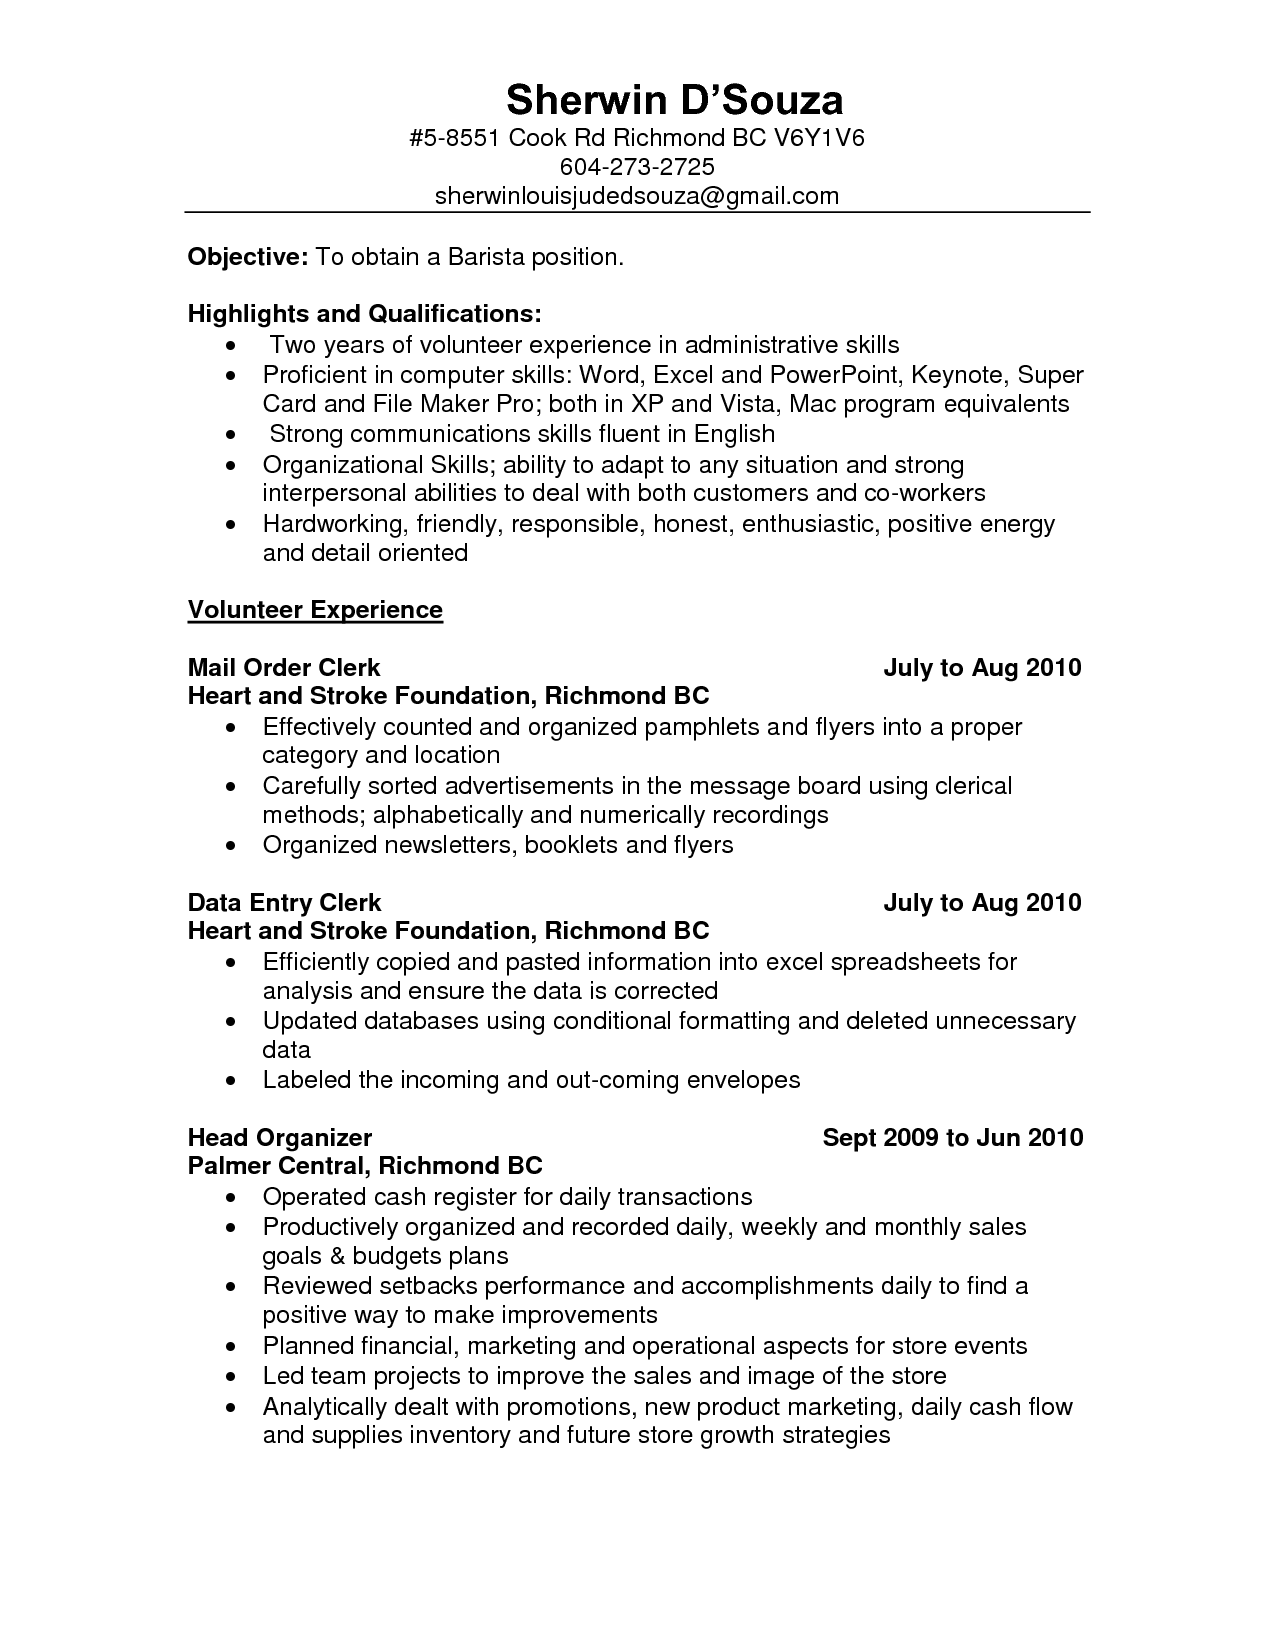 Resume Starbucks Job Description For Resume barista resume examples beautiful skills example pictures guide to the